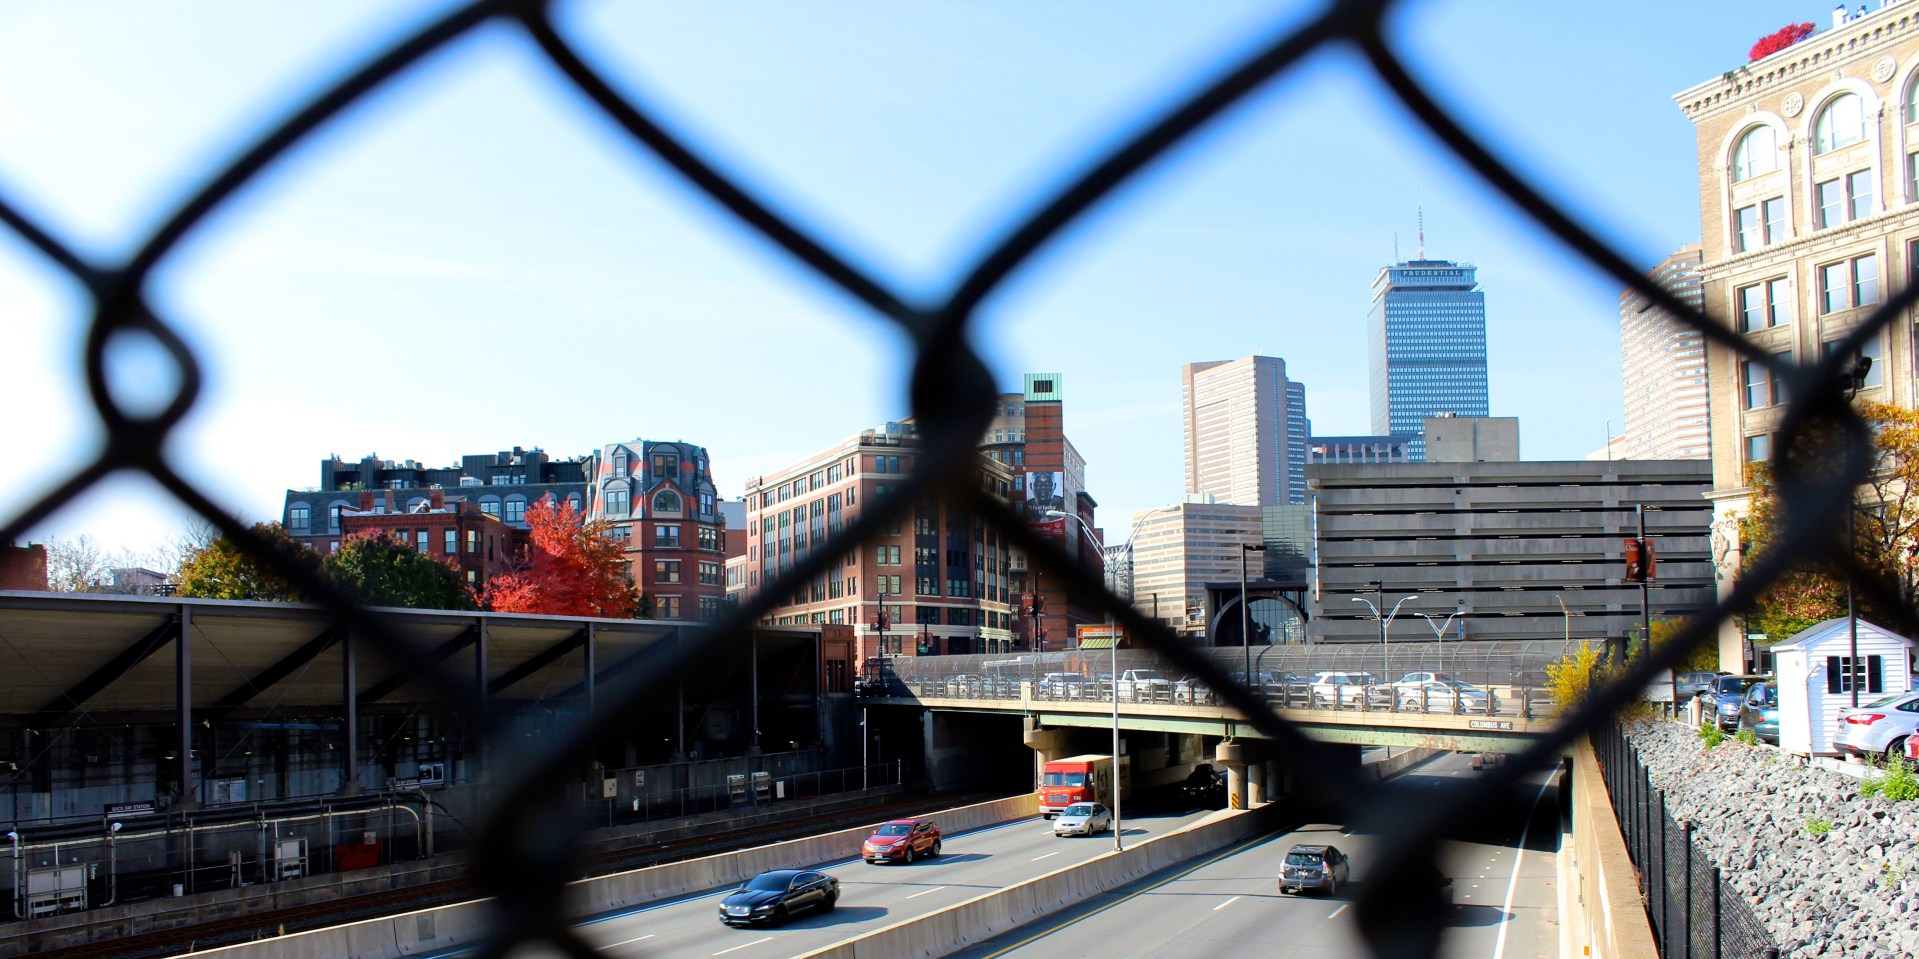 this photo shows boston highway and skyline visible through a chain link fence